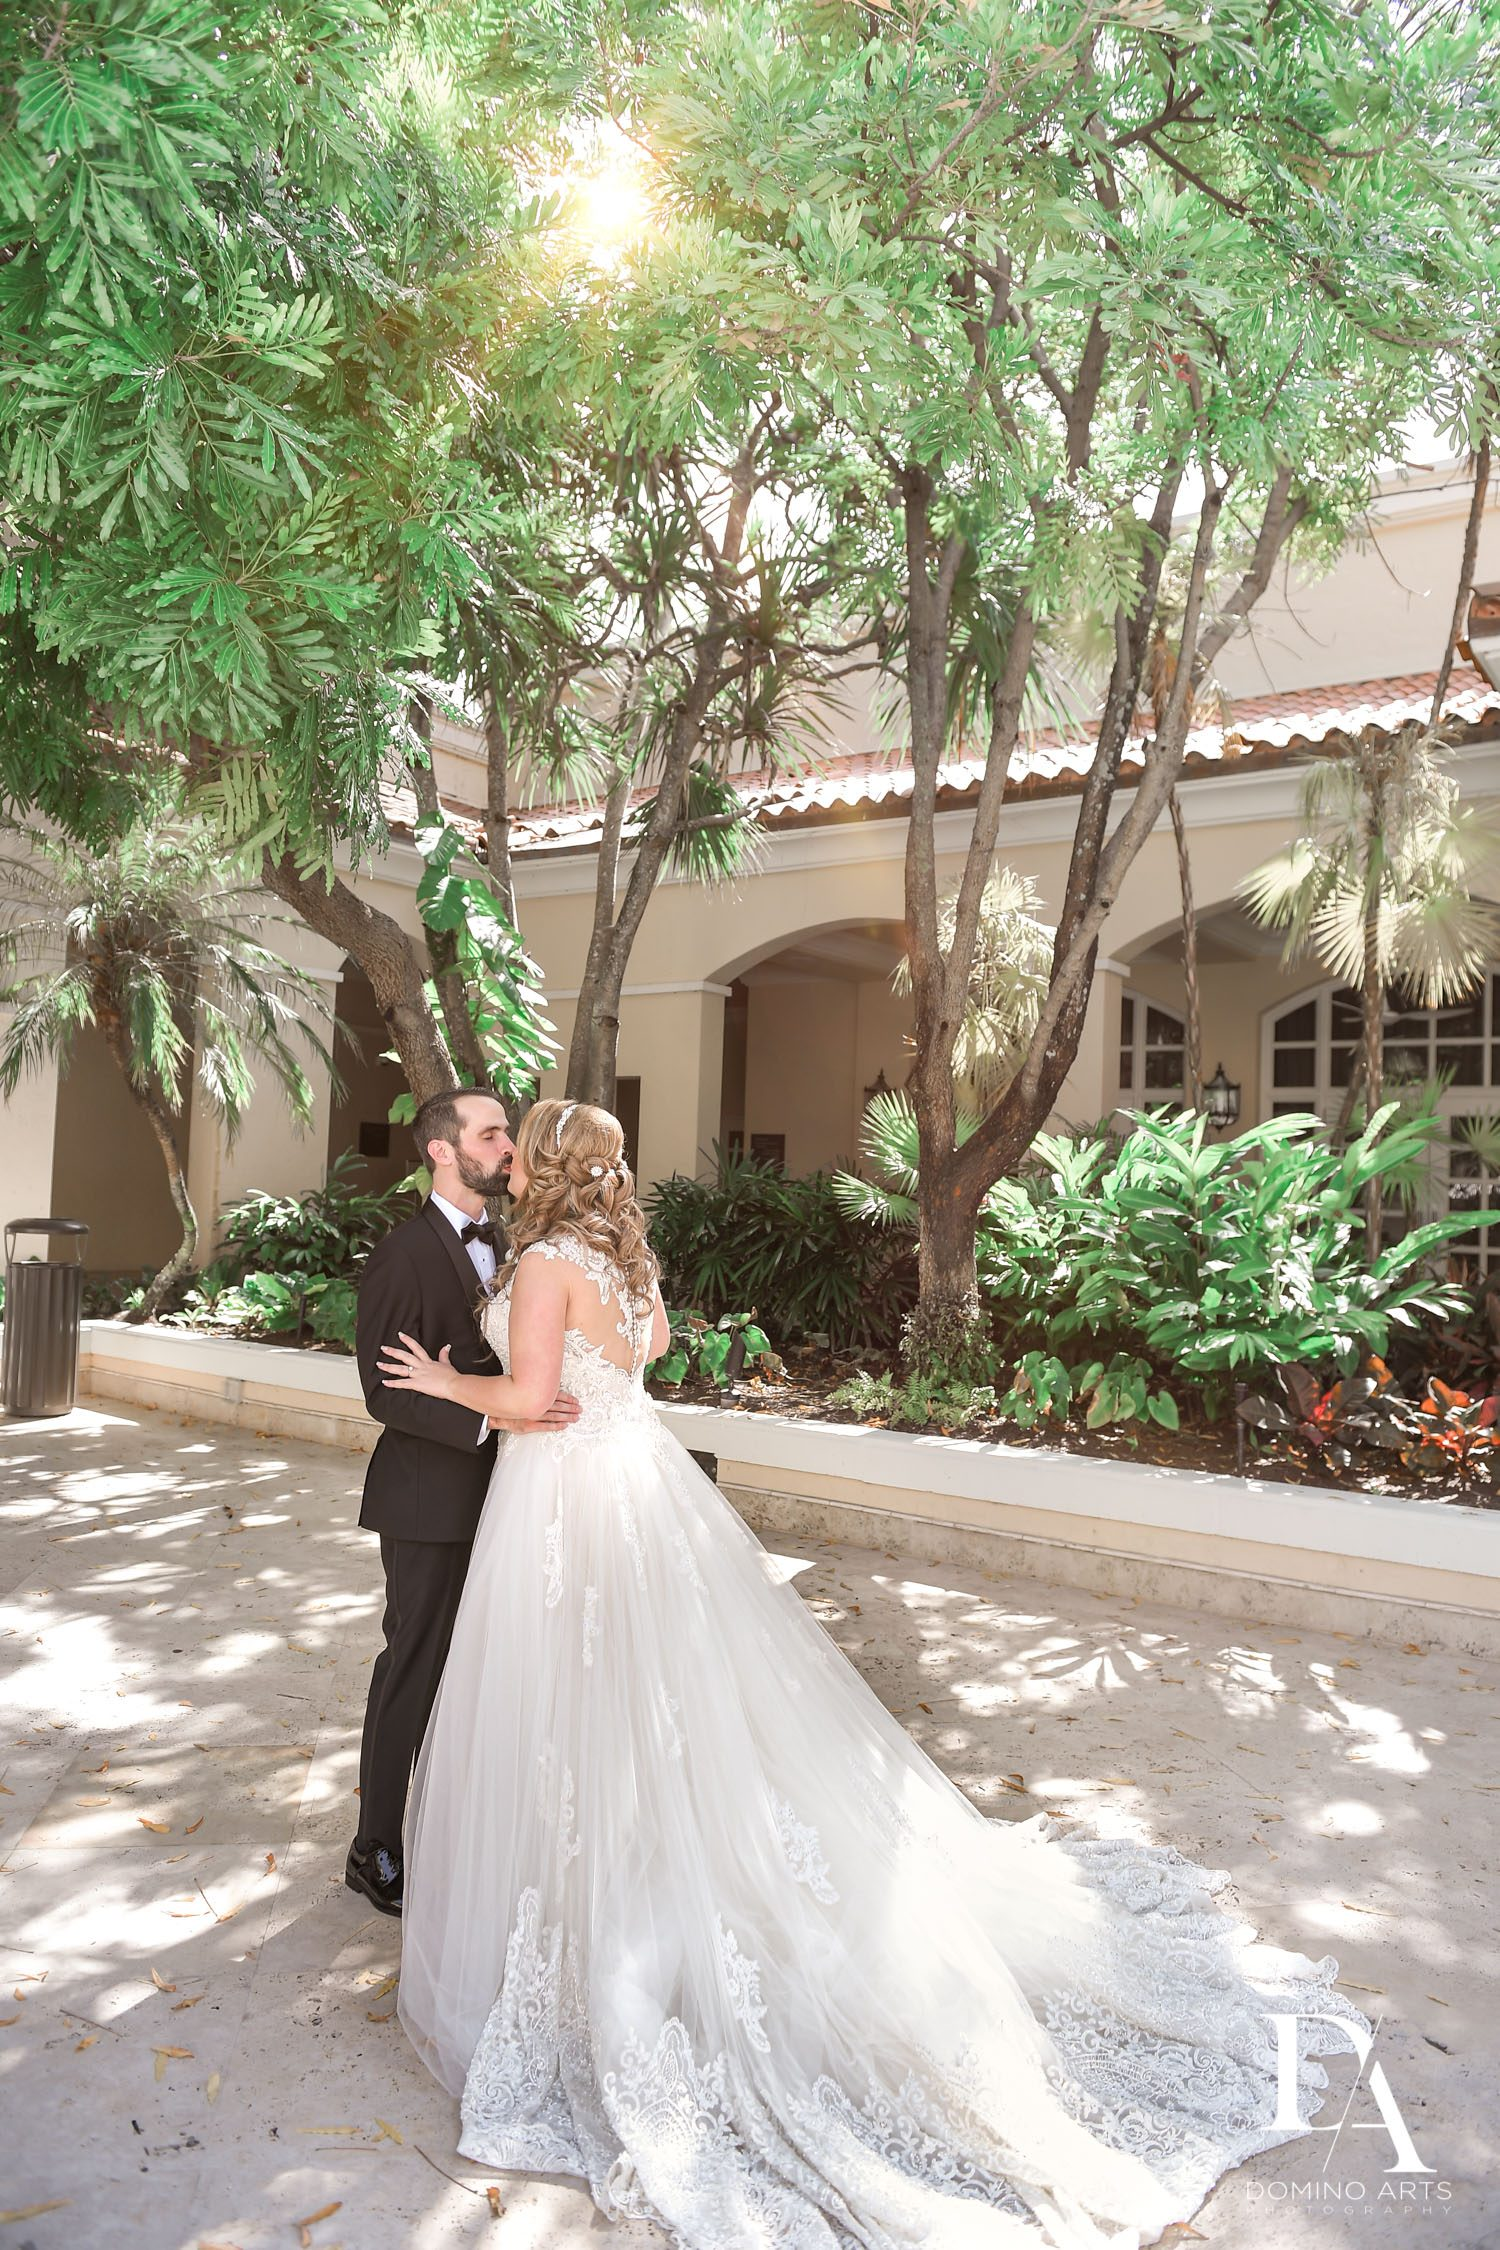 bride and groom at Ultimate Events Wedding at Turnberry Isle Resort Miami by Domino Arts Photography